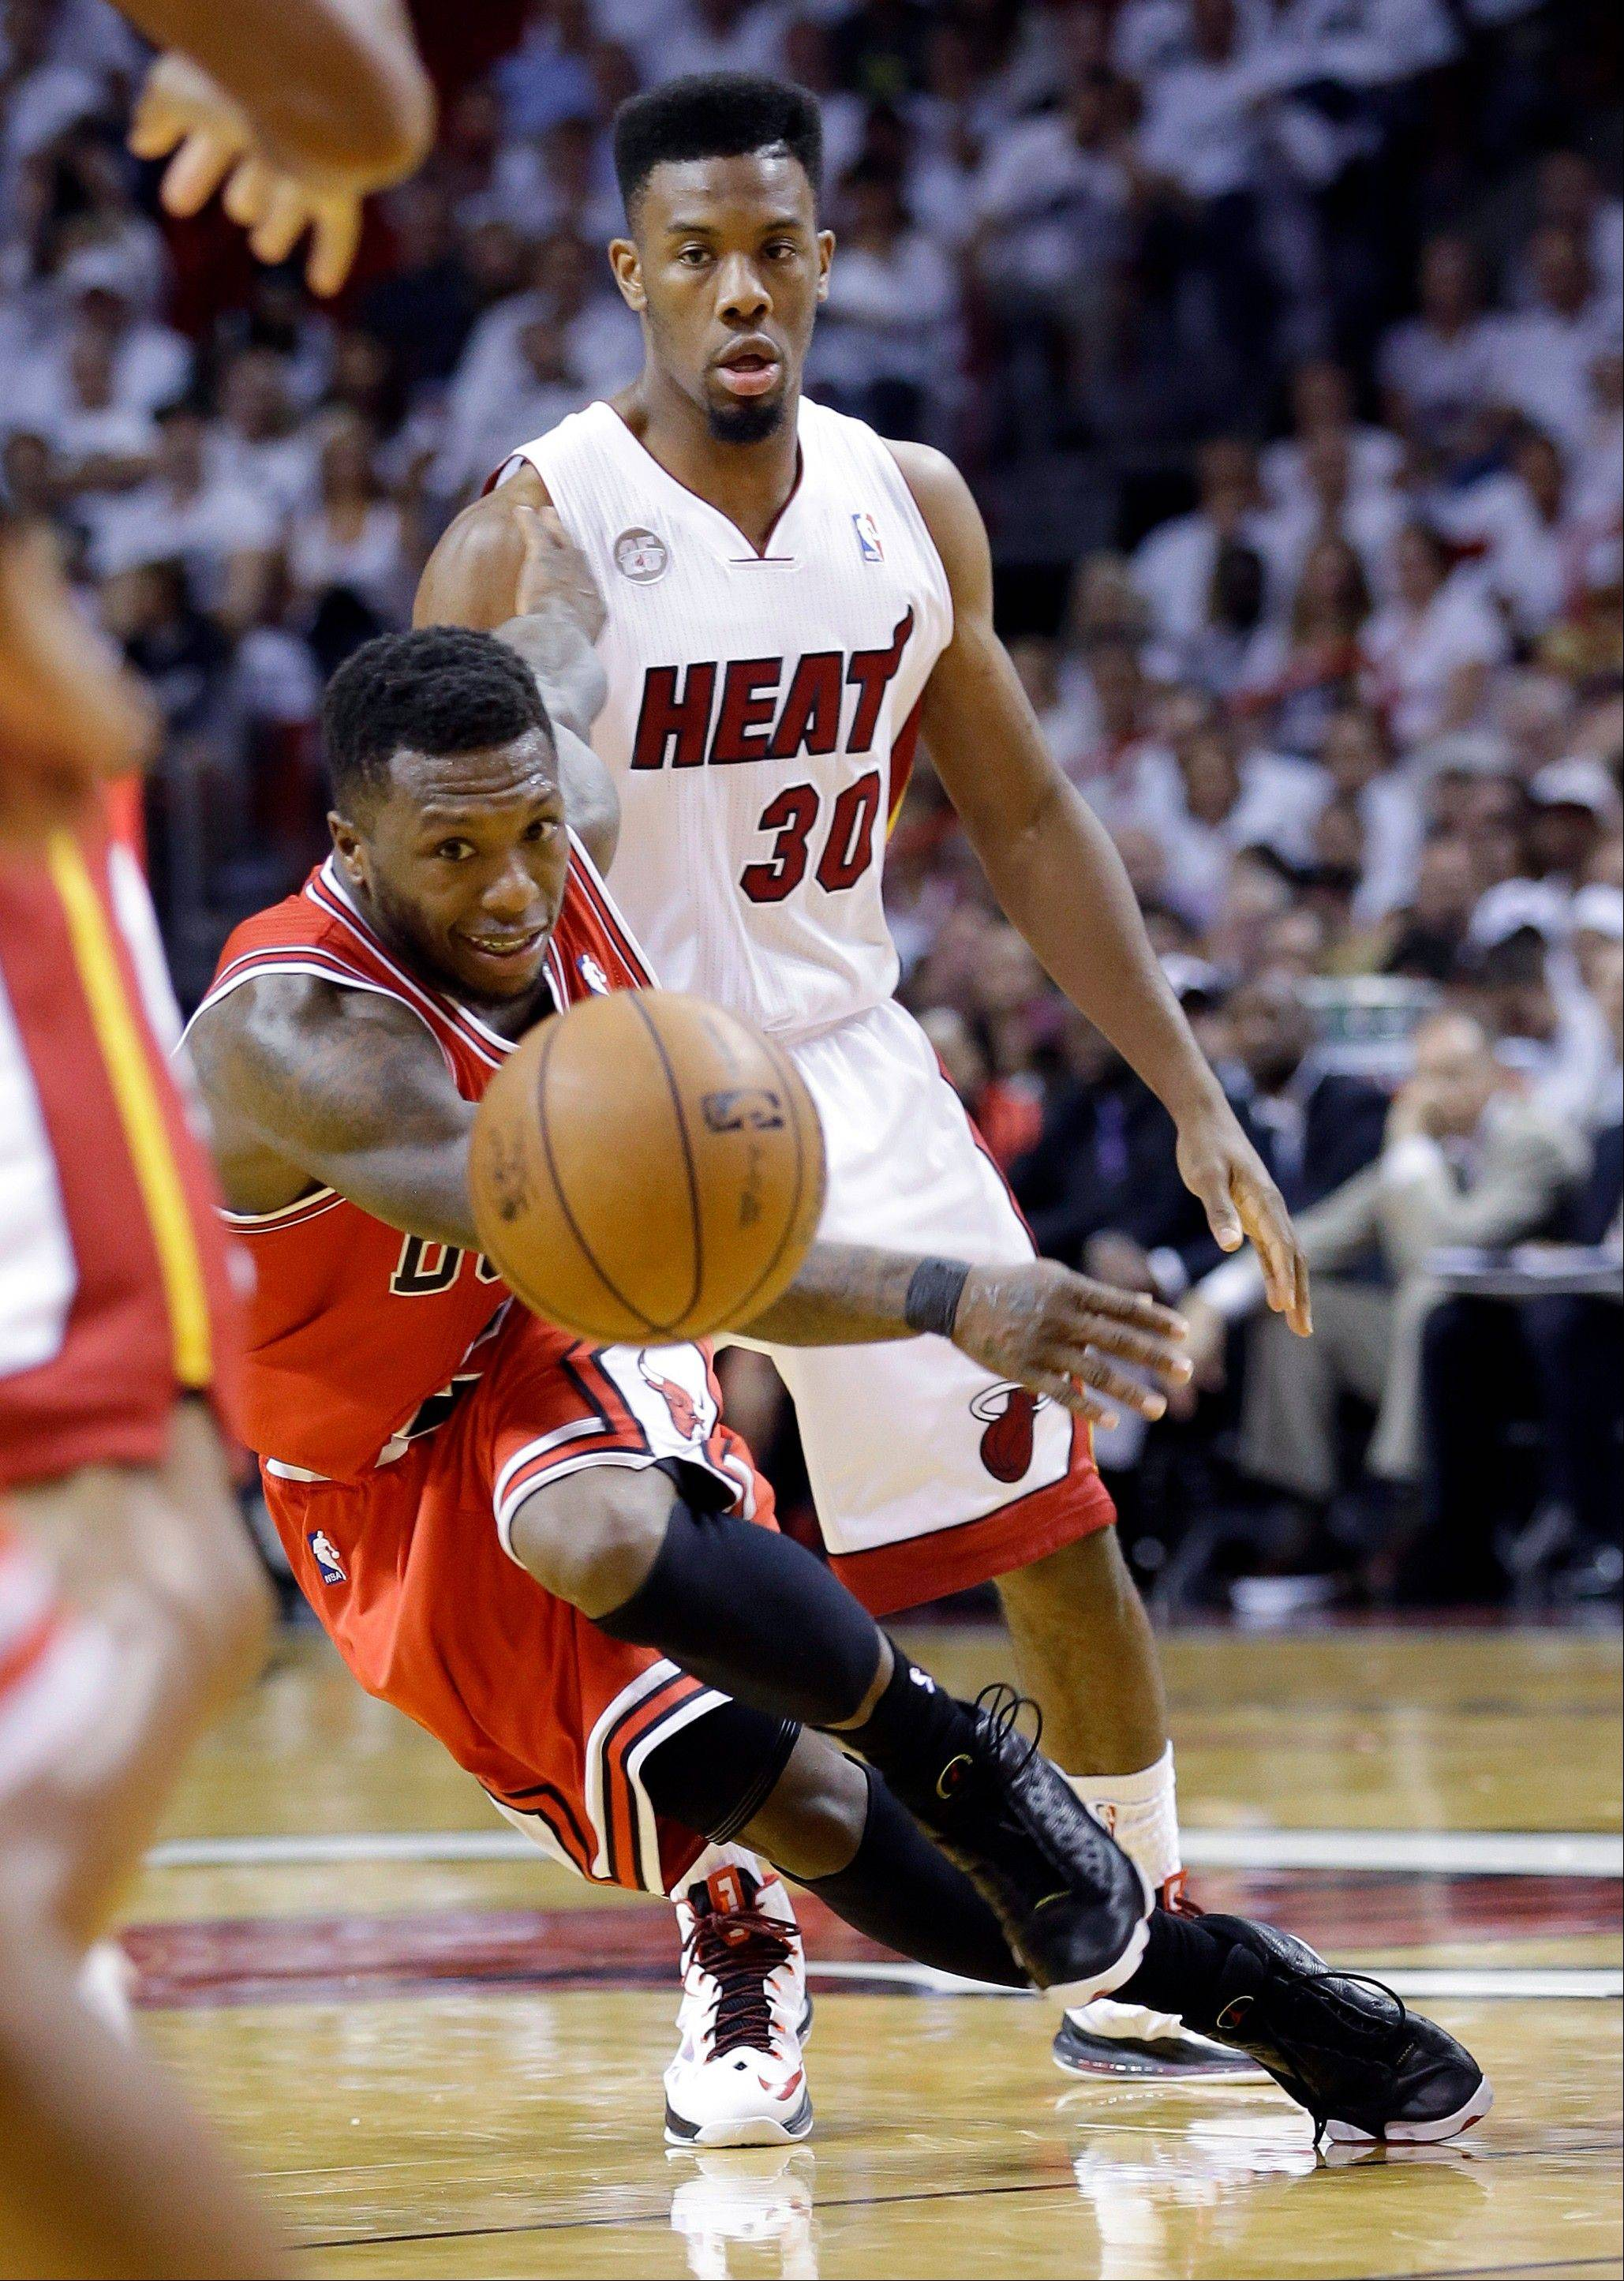 Chicago Bulls' Nate Robinson passes the ball as Miami Heat's Norris Cole (30) watches during the second half of Game 5 of an NBA basketball Eastern Conference semifinal, Wednesday, May 15, 2013, in Miami.